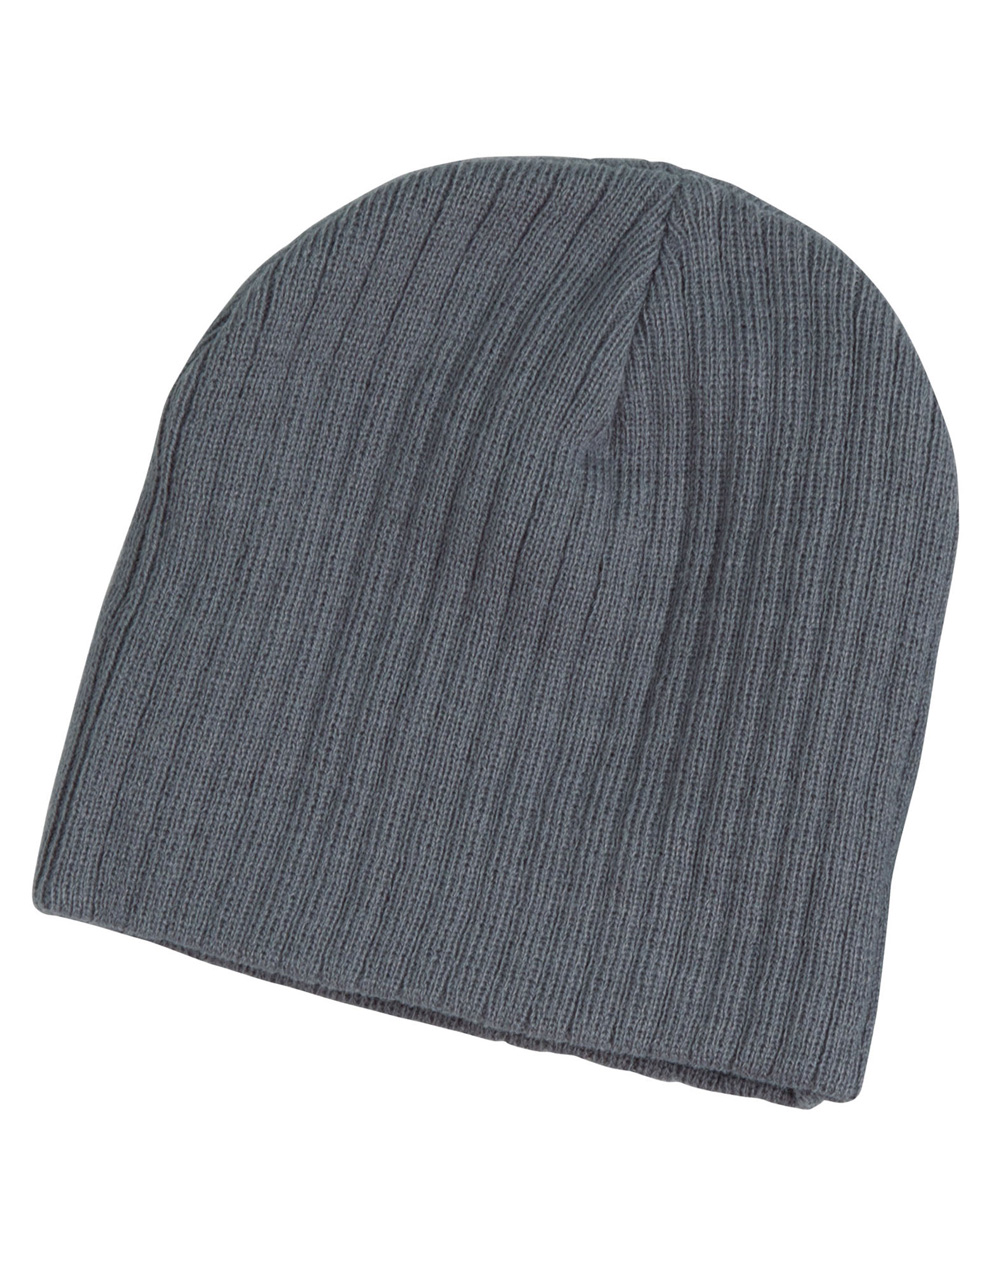 Acrylic knit beanie with cable row feature - RJS Group Pty Ltd